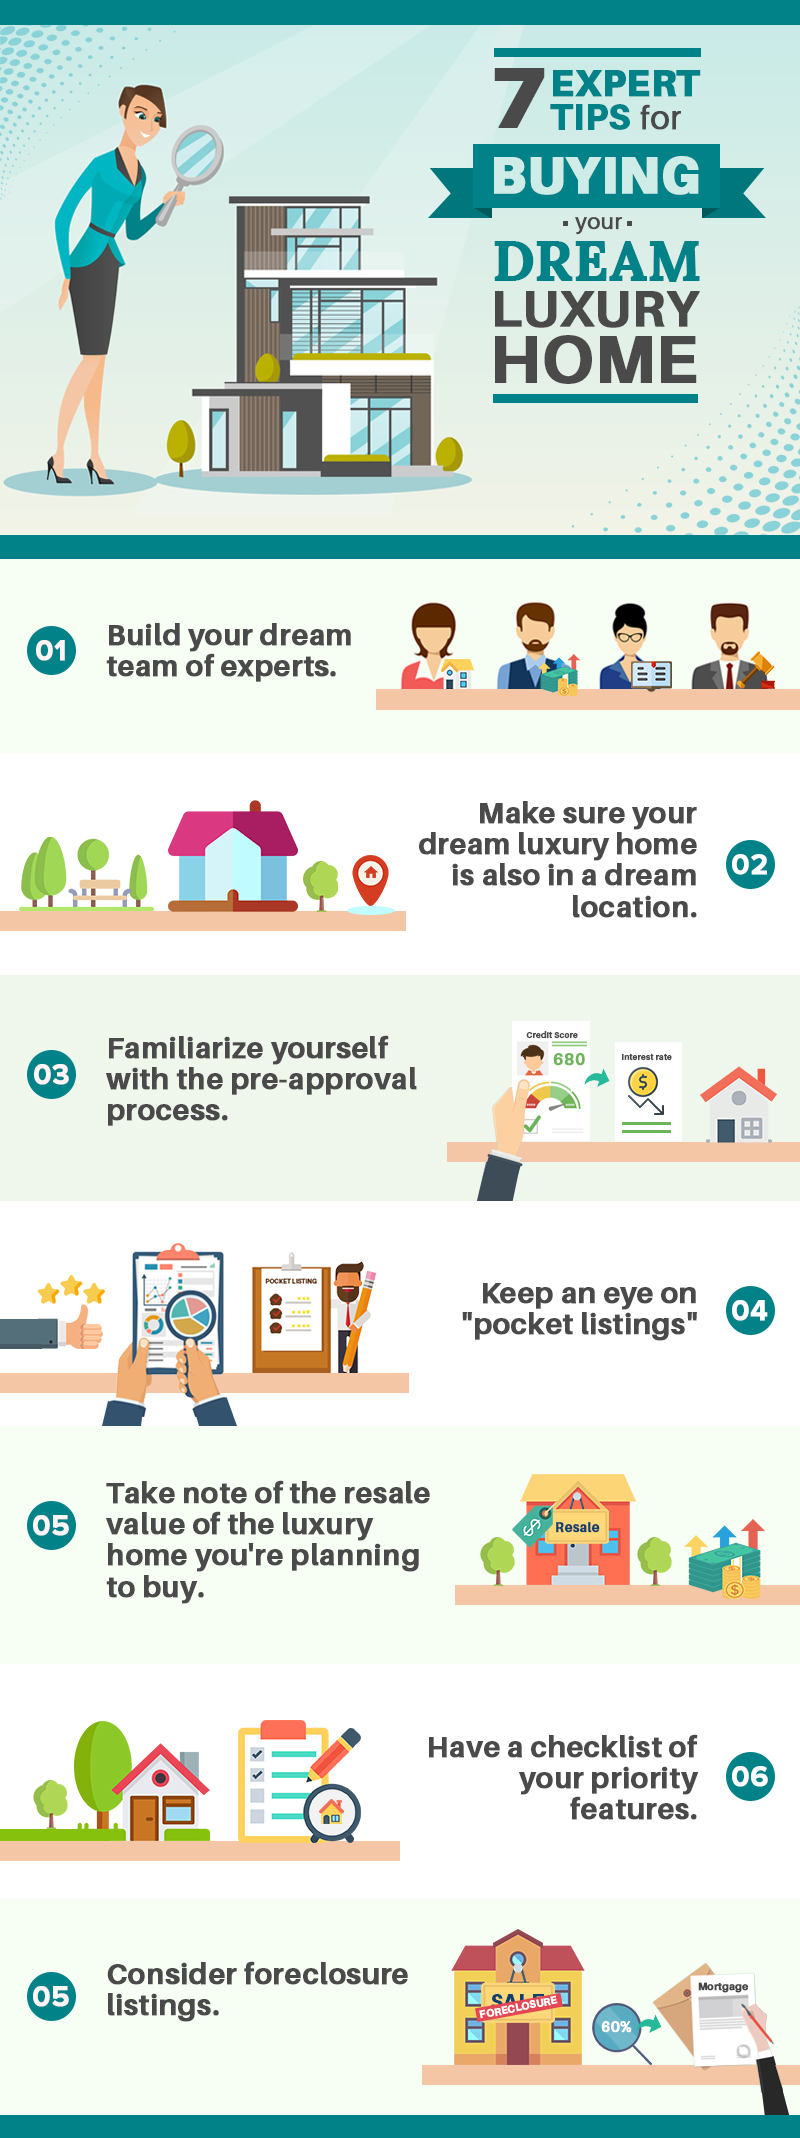 7 Expert Tips For Buying Your Dream Luxury Home.jpg